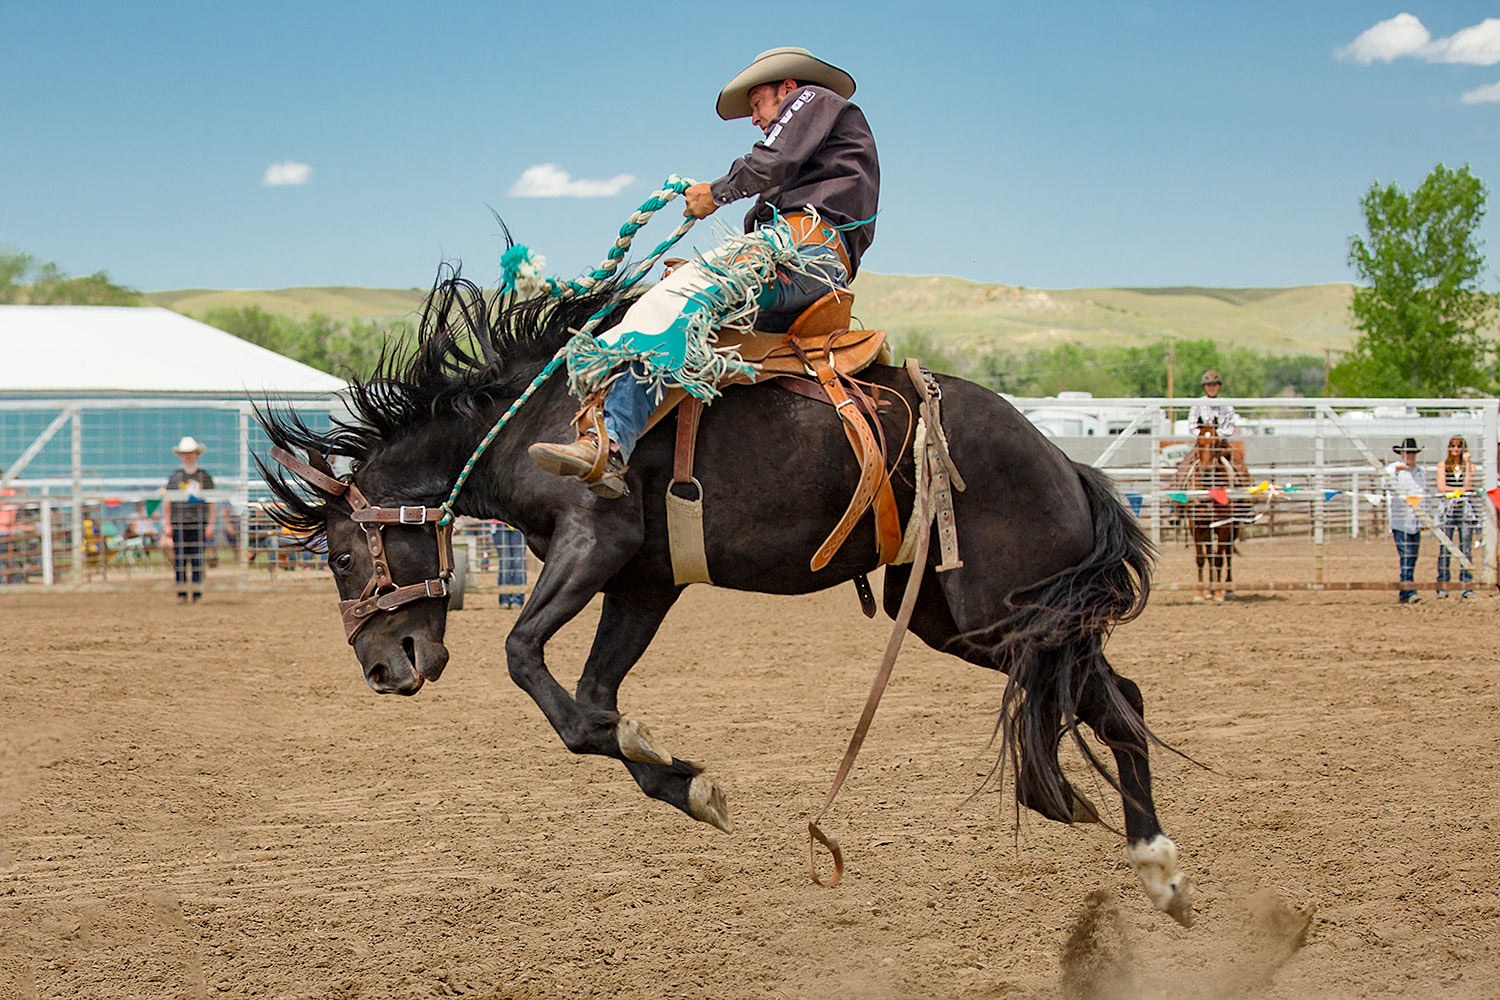 A bucking bronc rider holds on for dear life as his horse bucks real good coming out of the gate at the 2016 Miles City Bucking Horse Sale in Miles City, Montana.